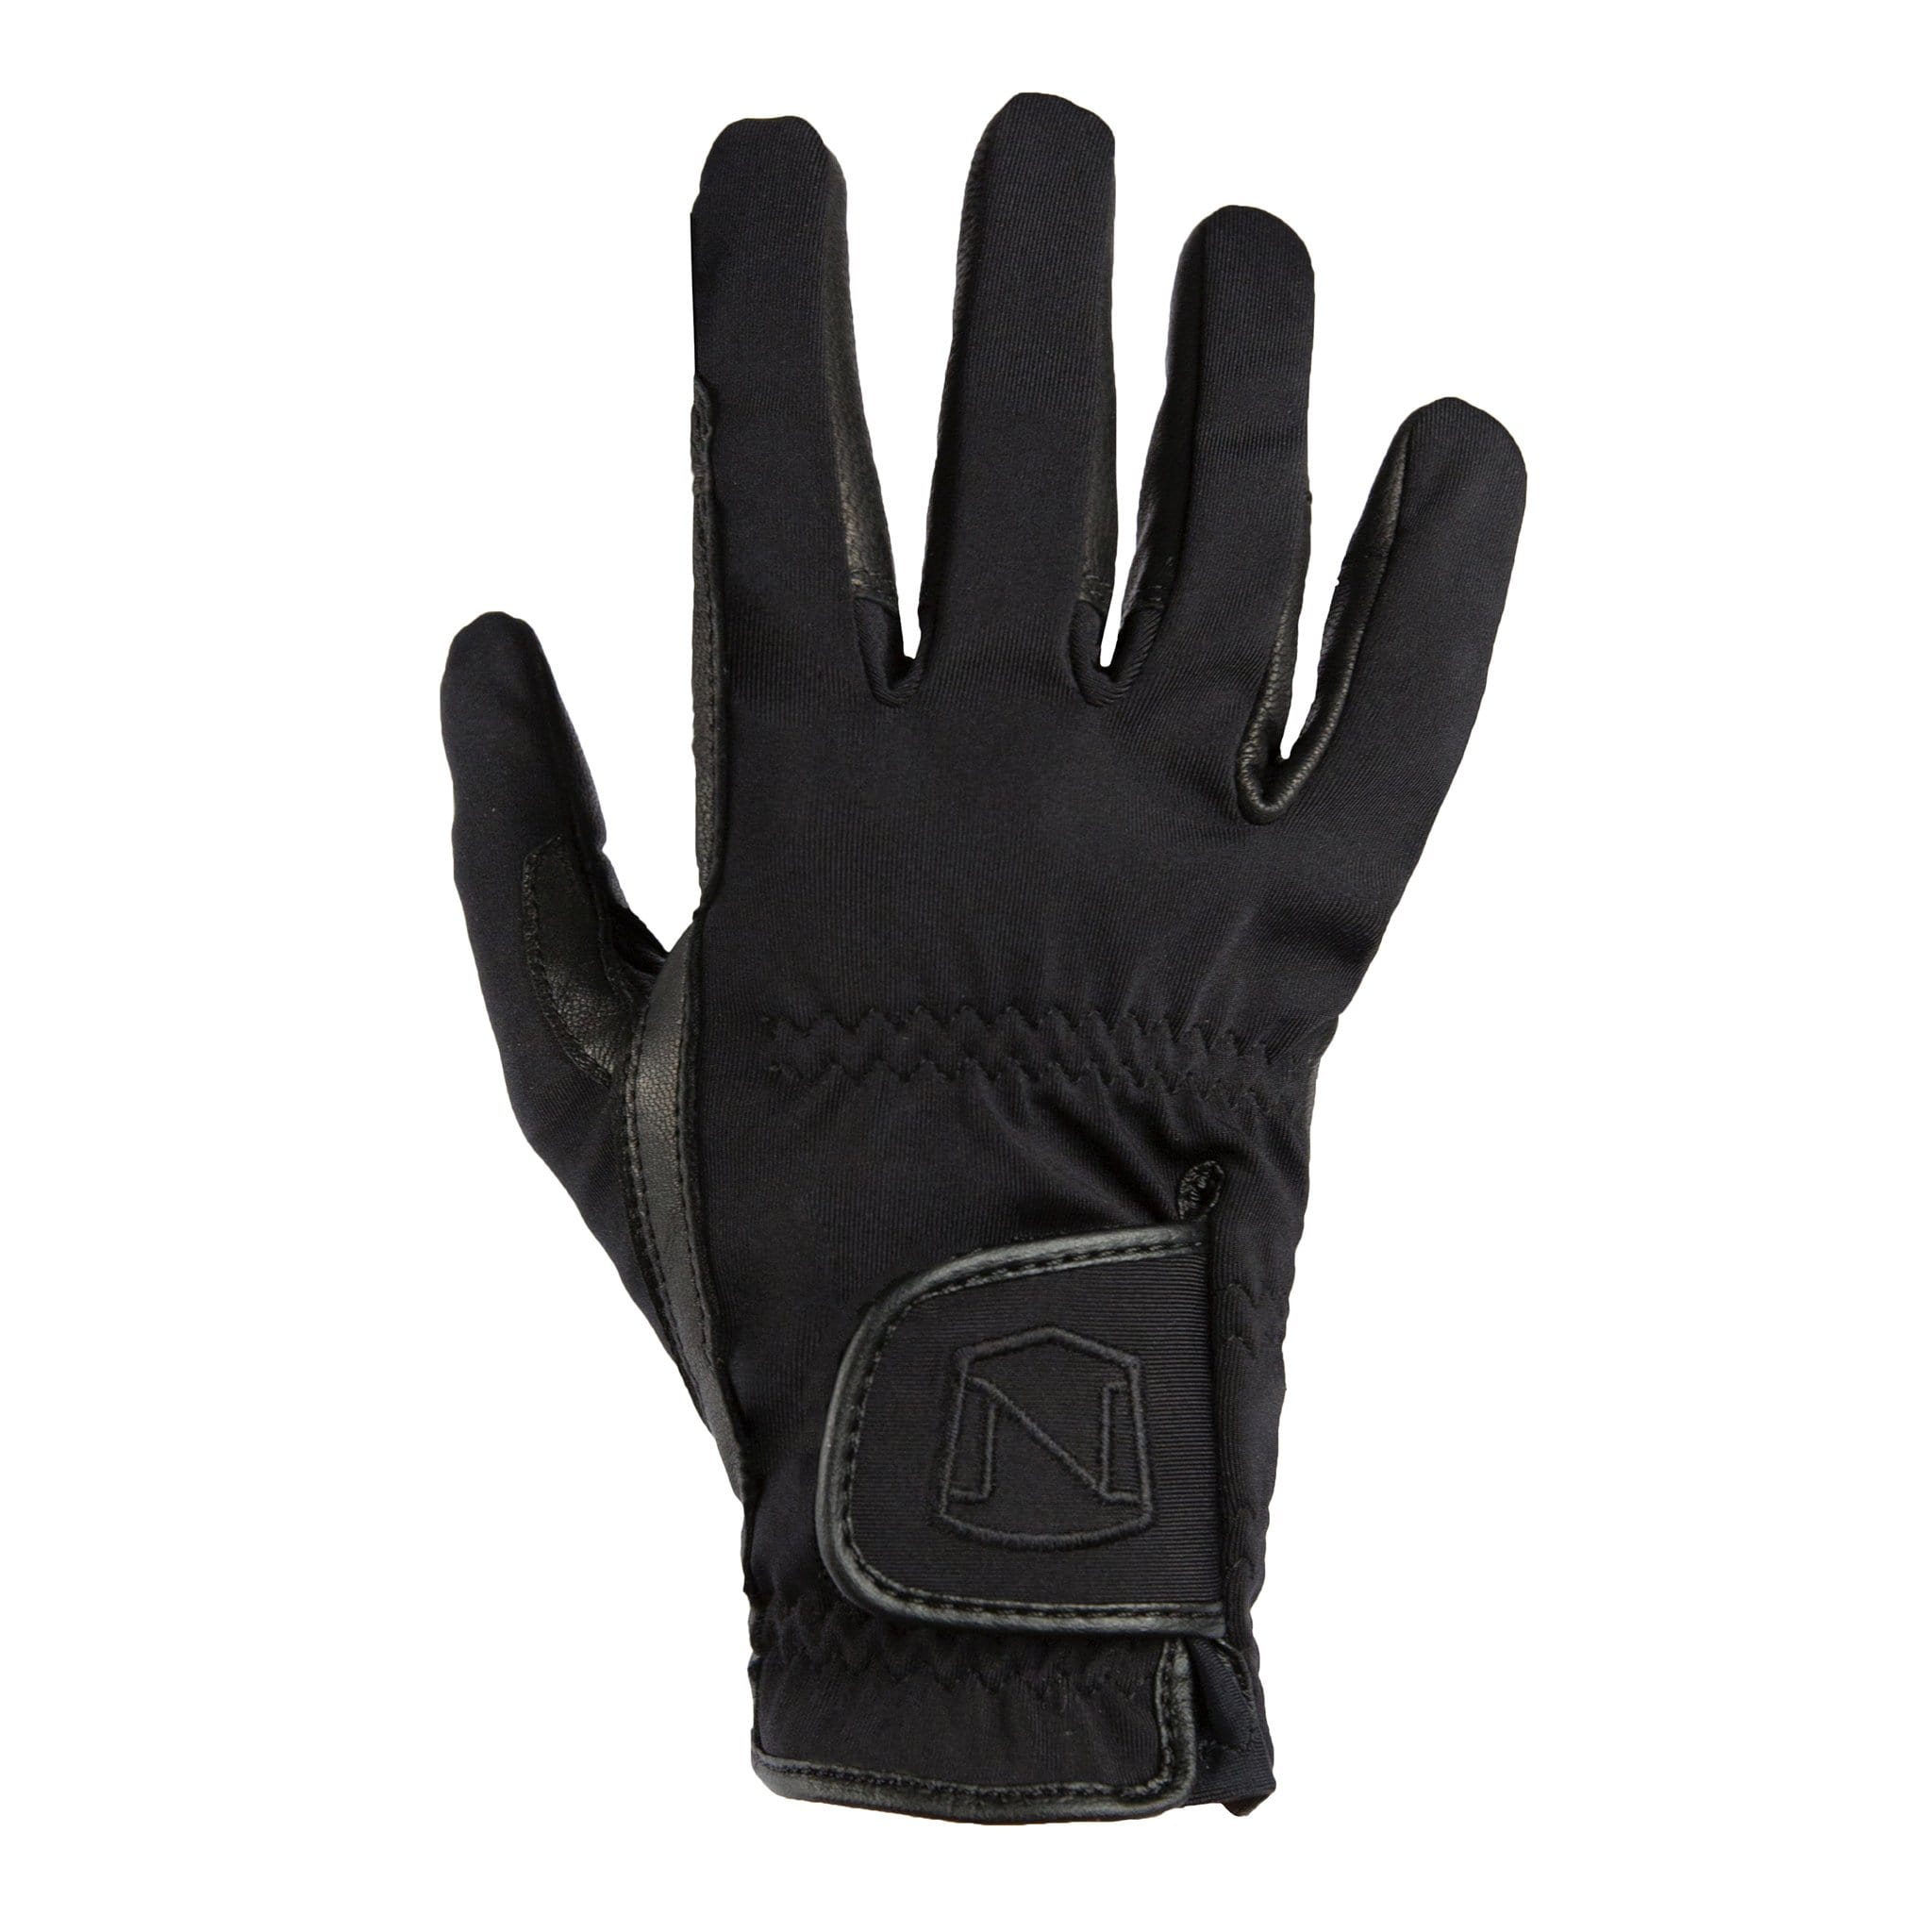 Noble Equestrian Winter Show Glove Top 50012